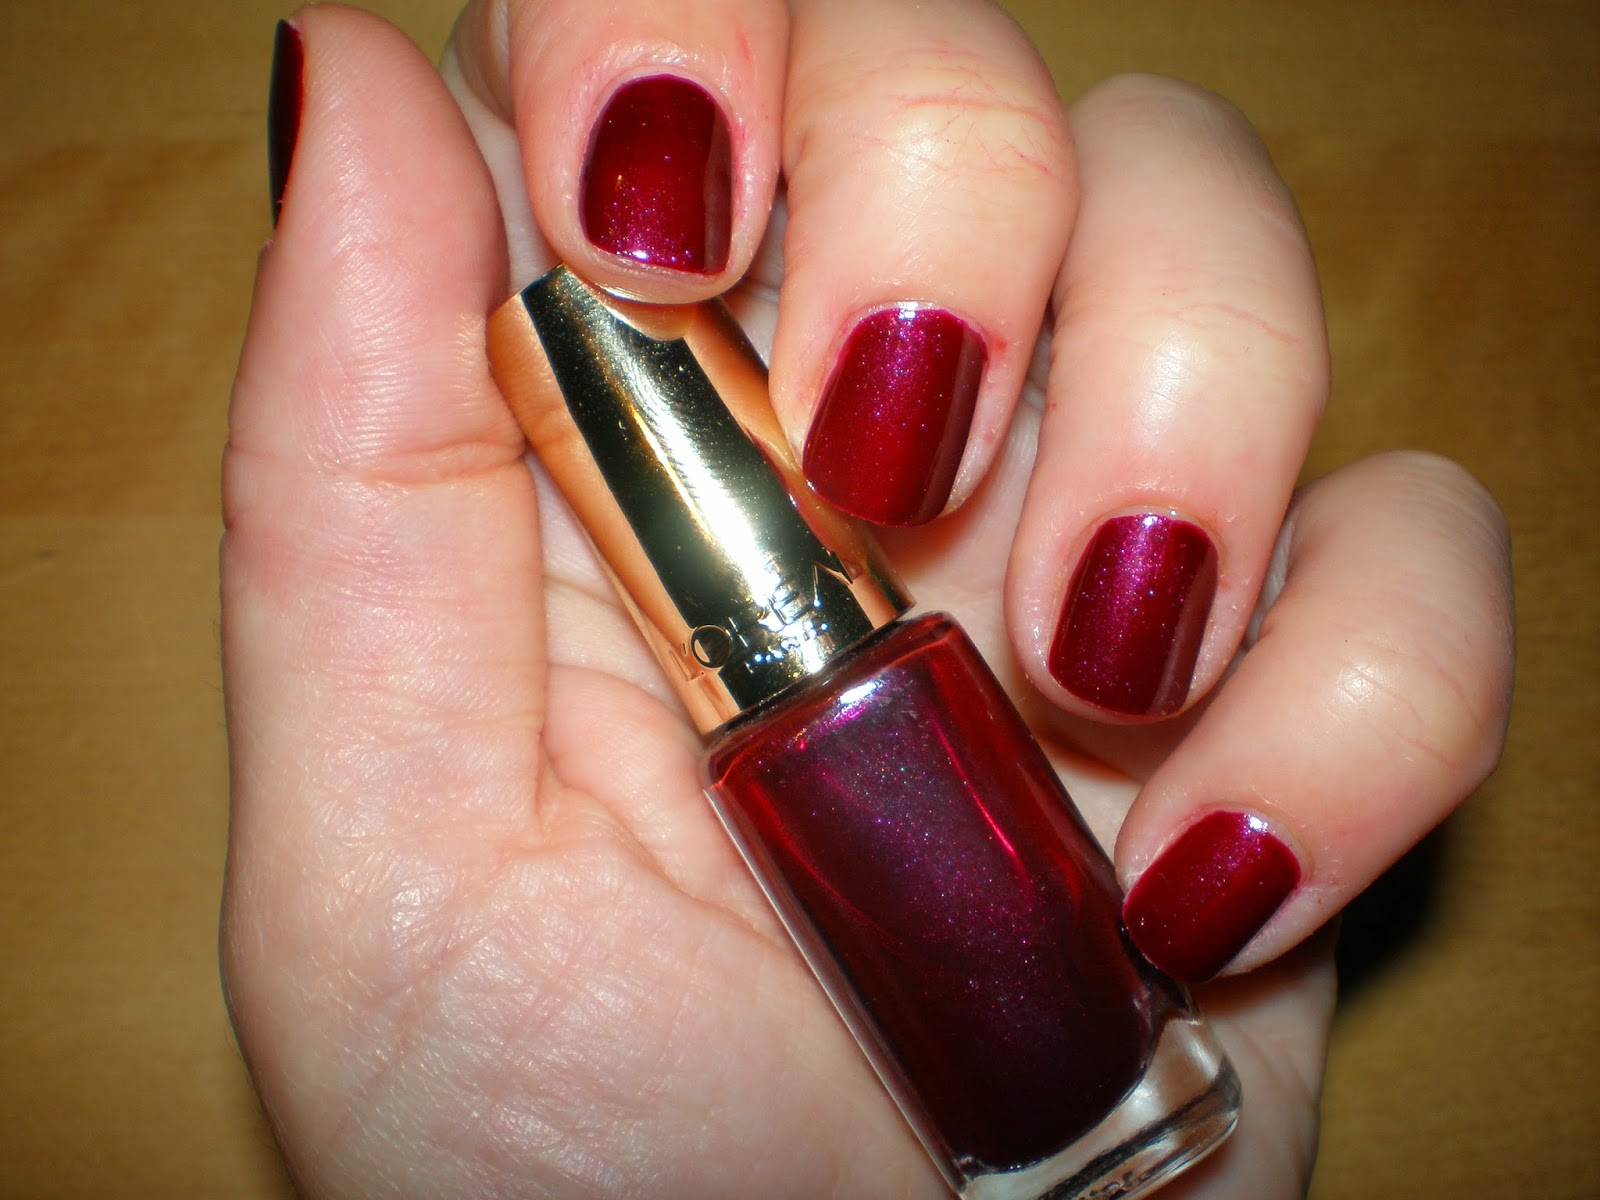 L'oreal color riche in Burgundy Diva #406